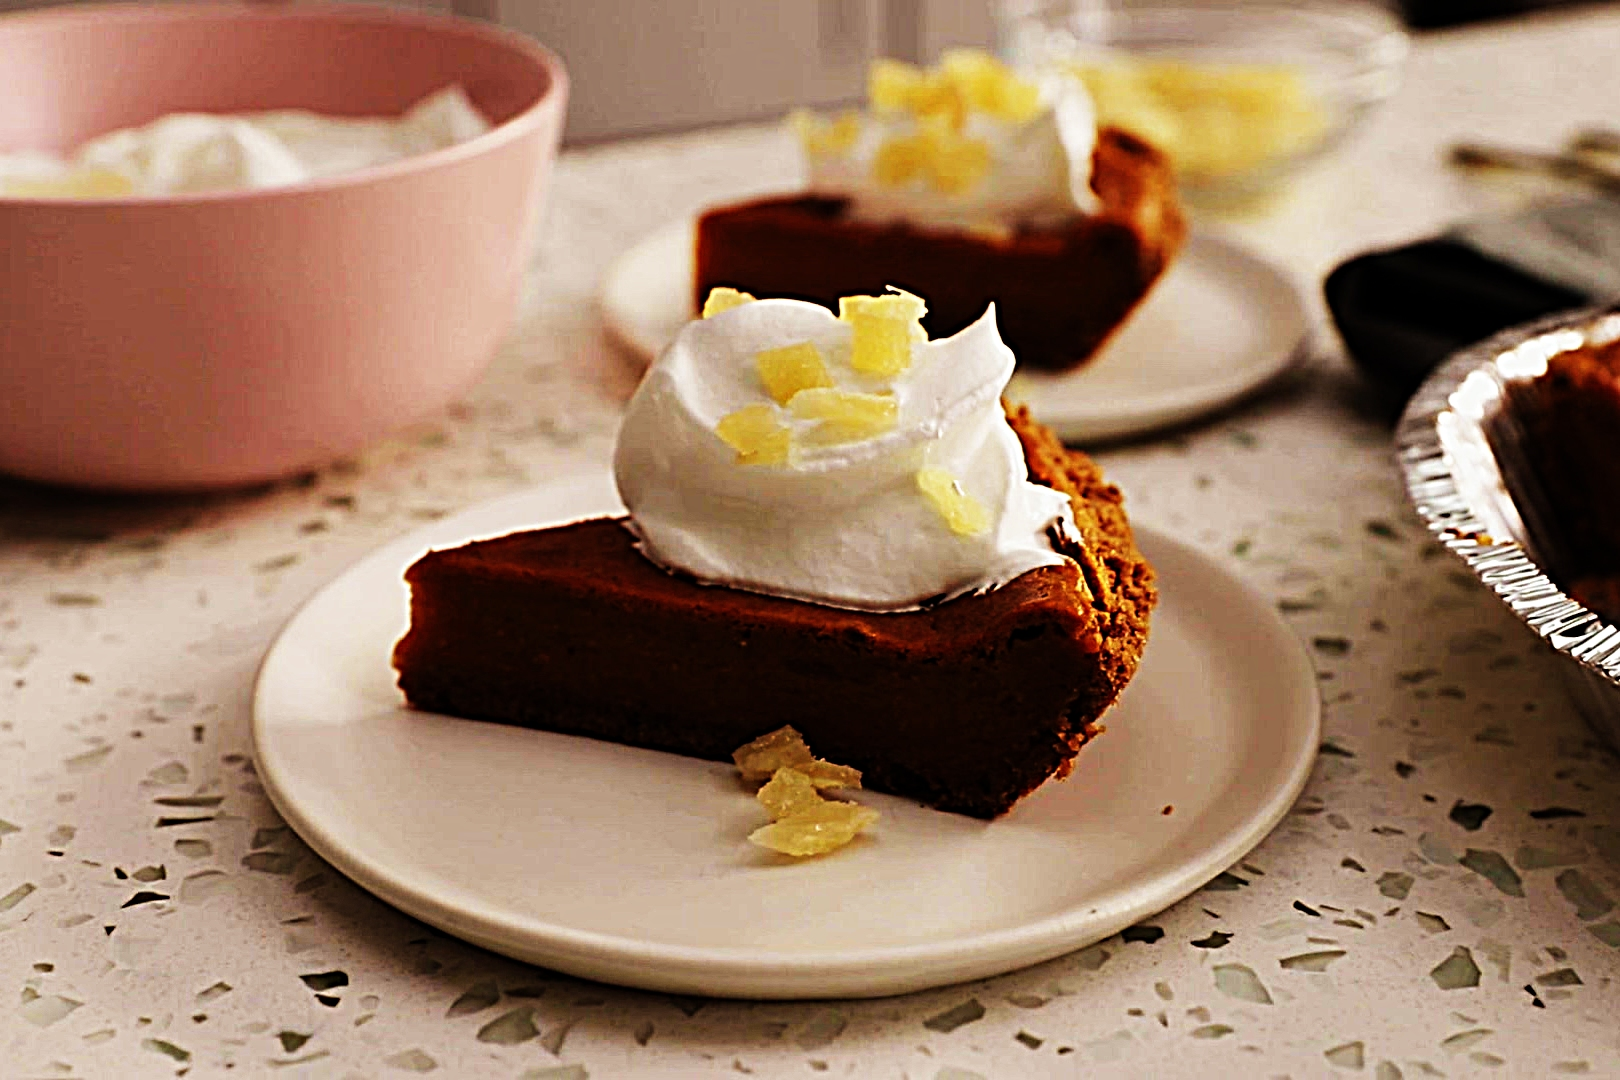 Stupid-Easy Recipe for Gluten-Free, Dairy-Free, Egg-Free Pumpkin Pie (#1 Top-Rated)